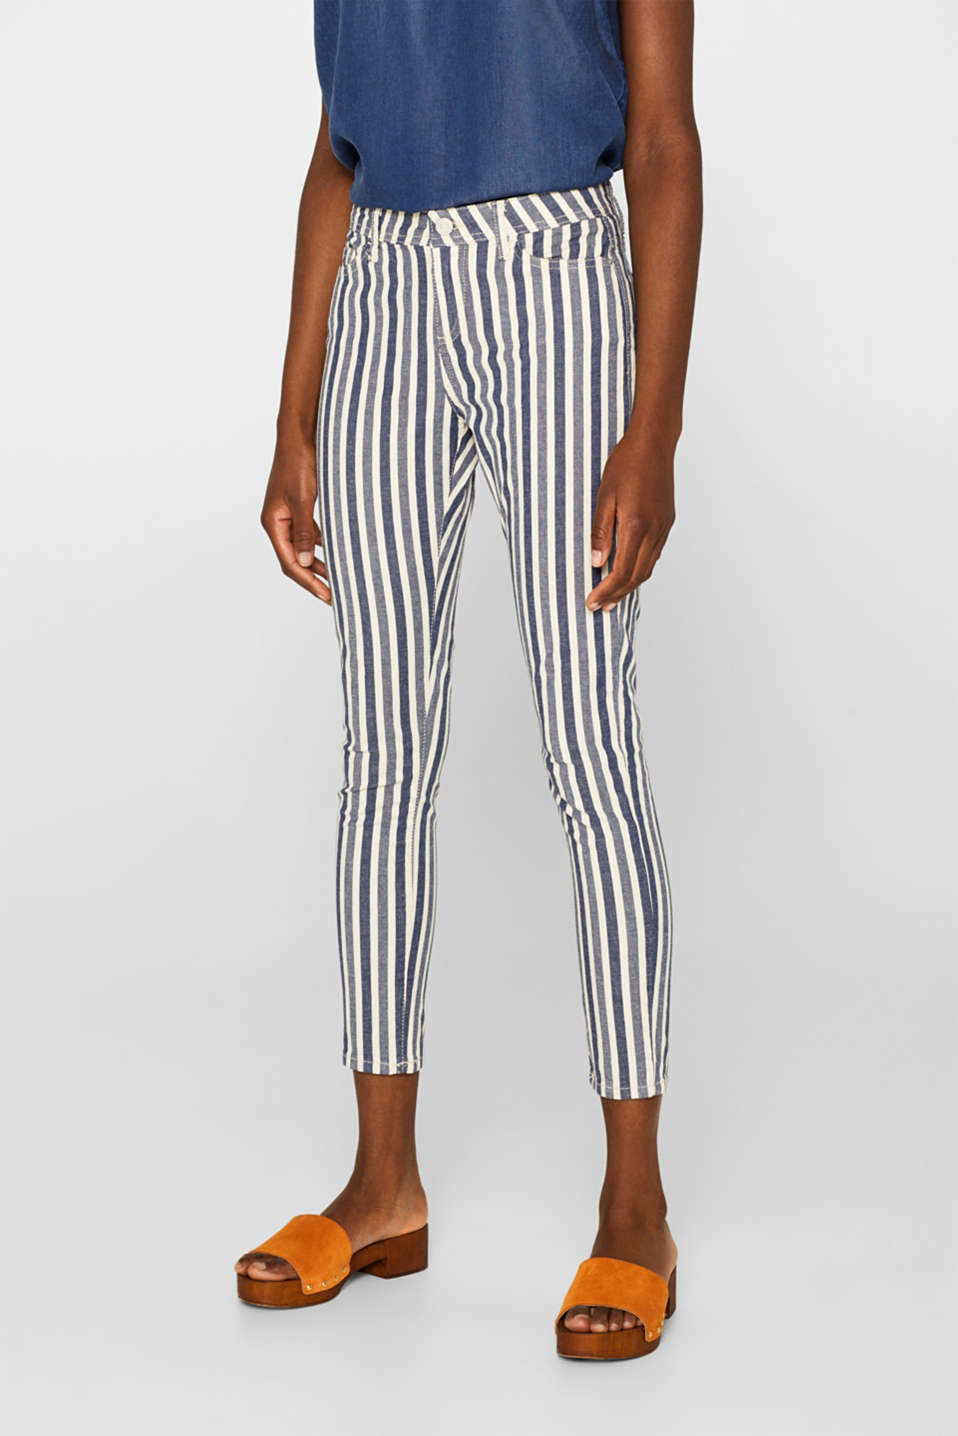 Esprit - Stretch jeans with stripes and organic cotton